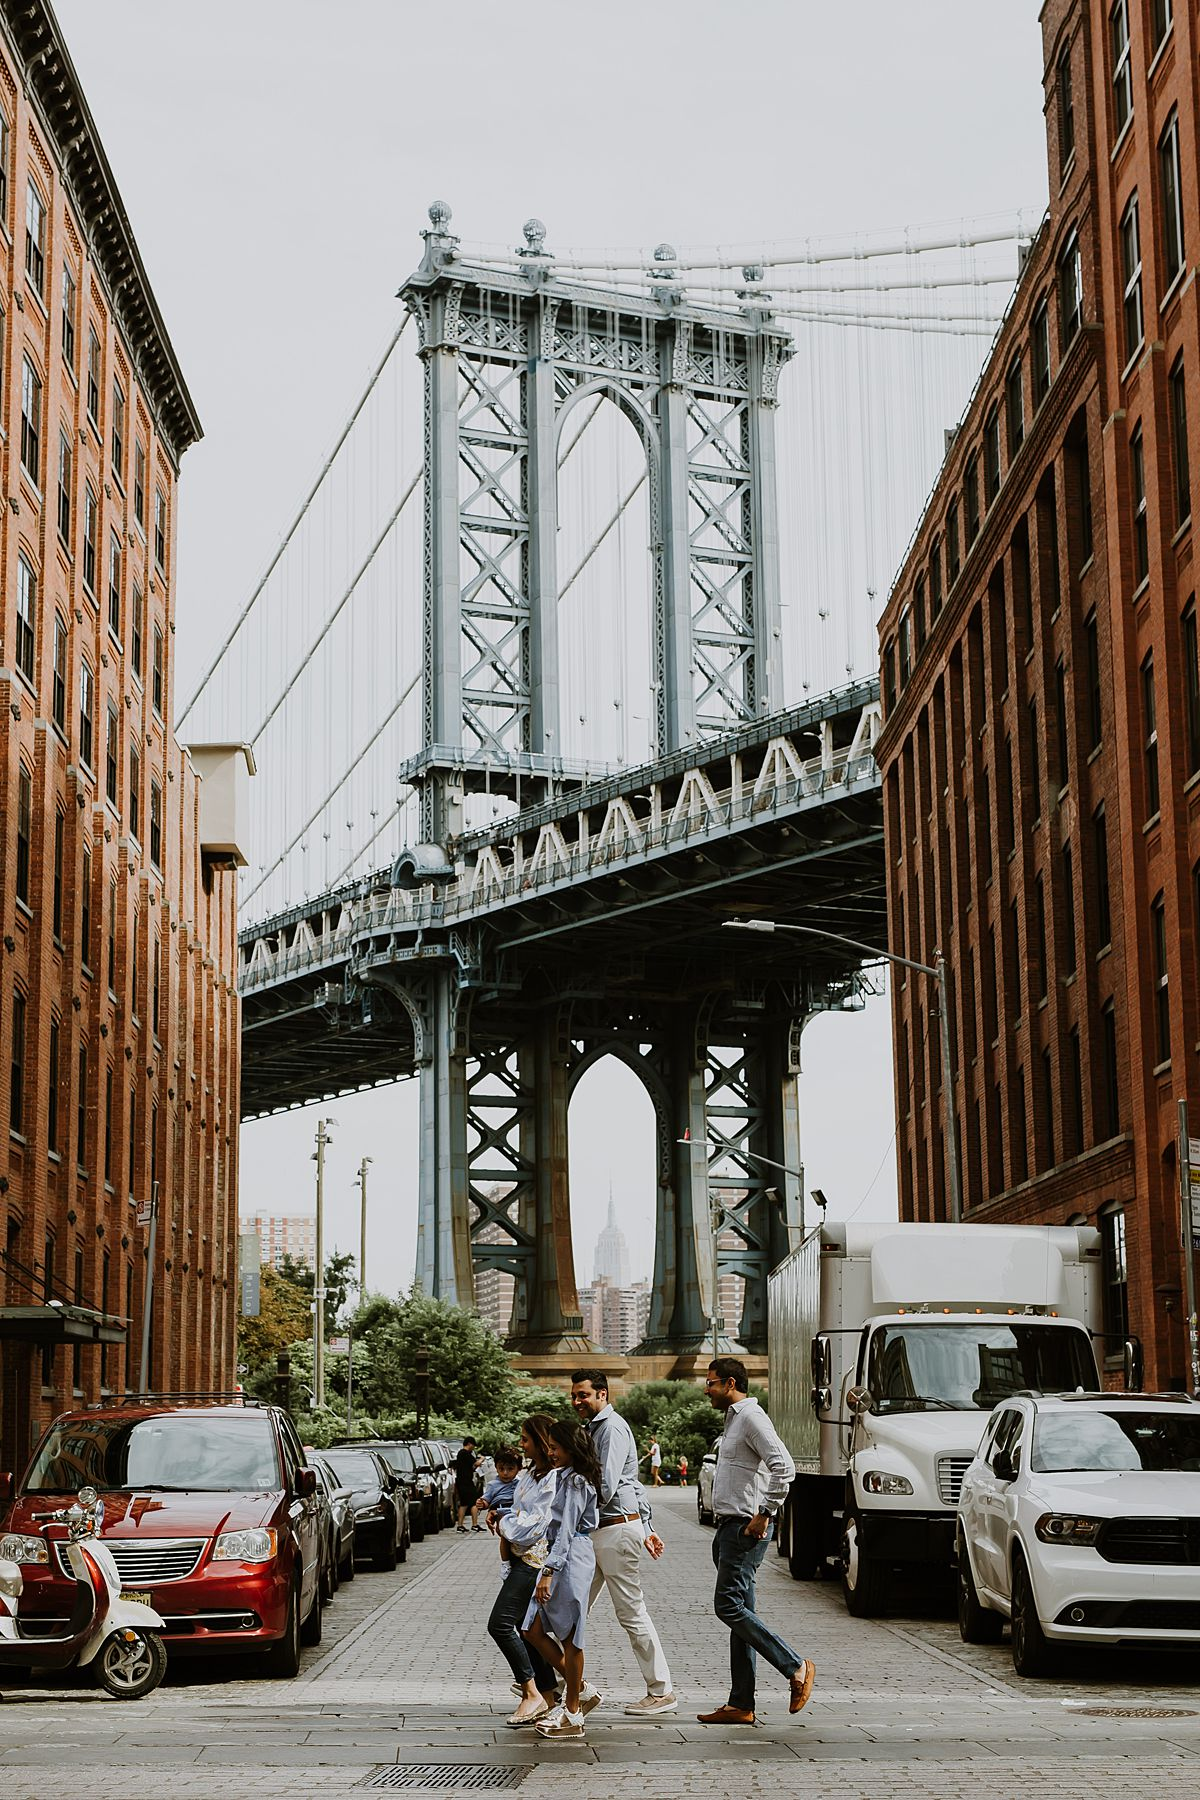 family photo walking in front of the manhattan bridge in dumbo brooklyn. photo by krystil mcdowall photography